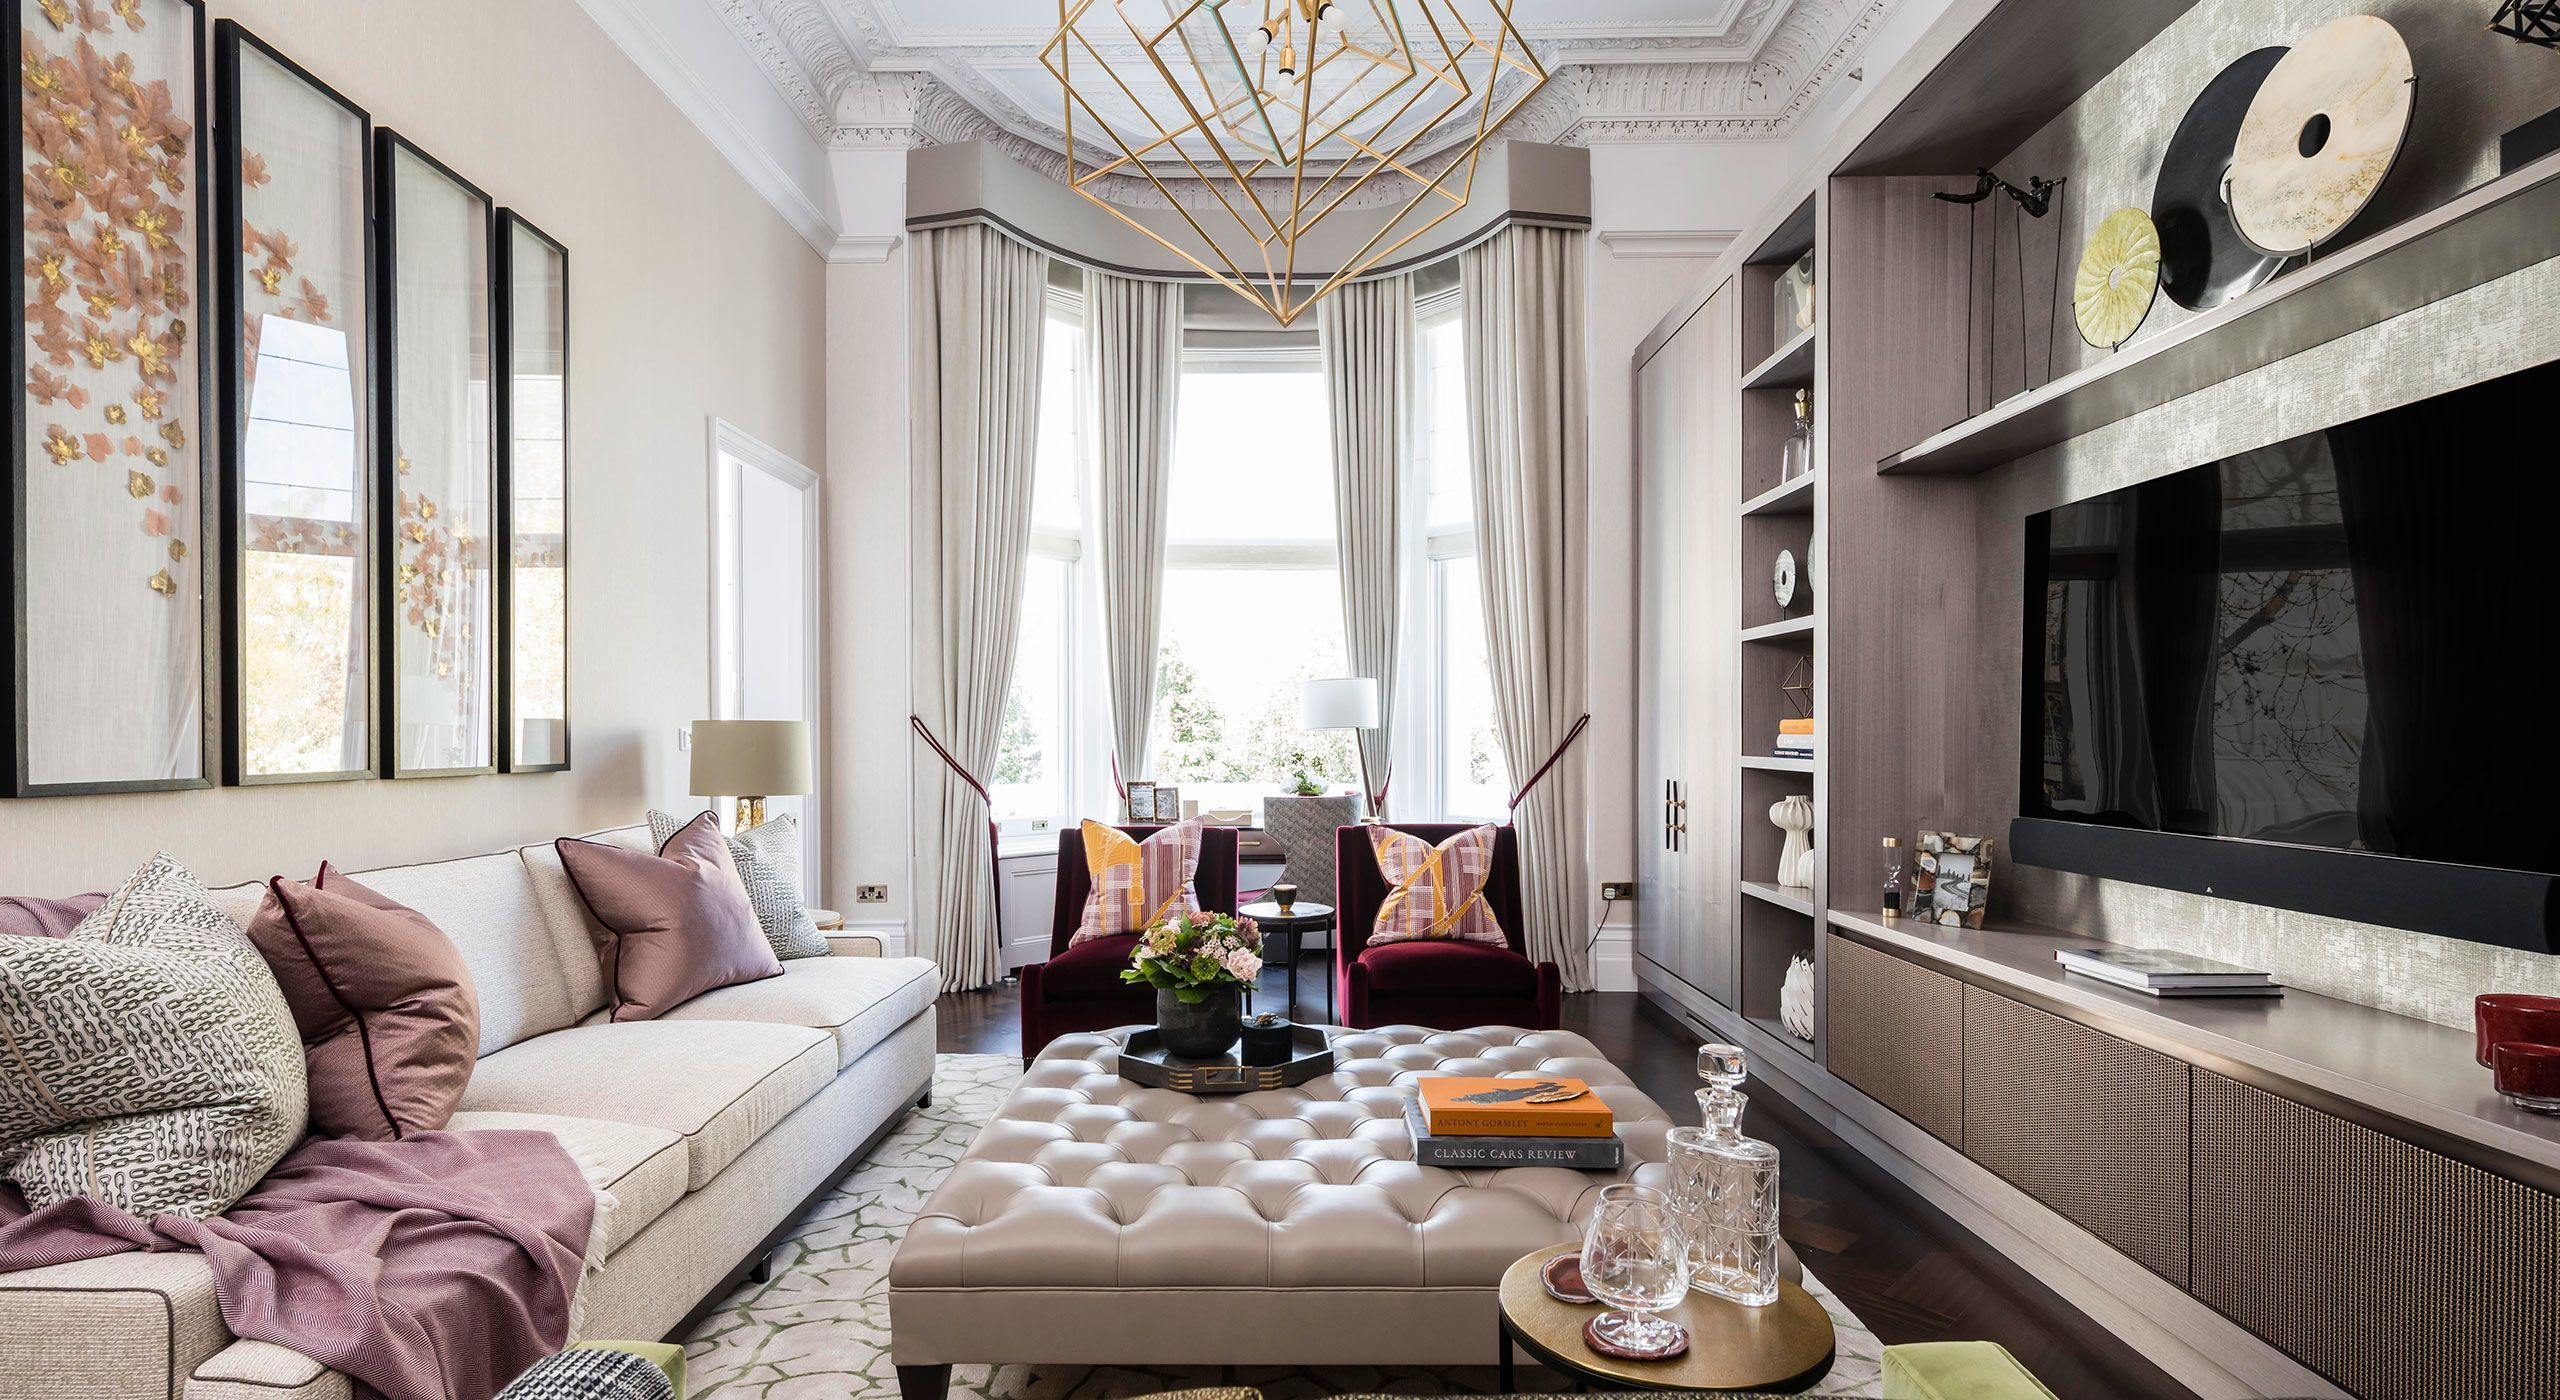 4 Top Interior Design Trends For 2020 Mansion Global Home Decor Home Decor Id In 2020 Master Bedroom Interior Design Interior Design Awards Interior Design Software